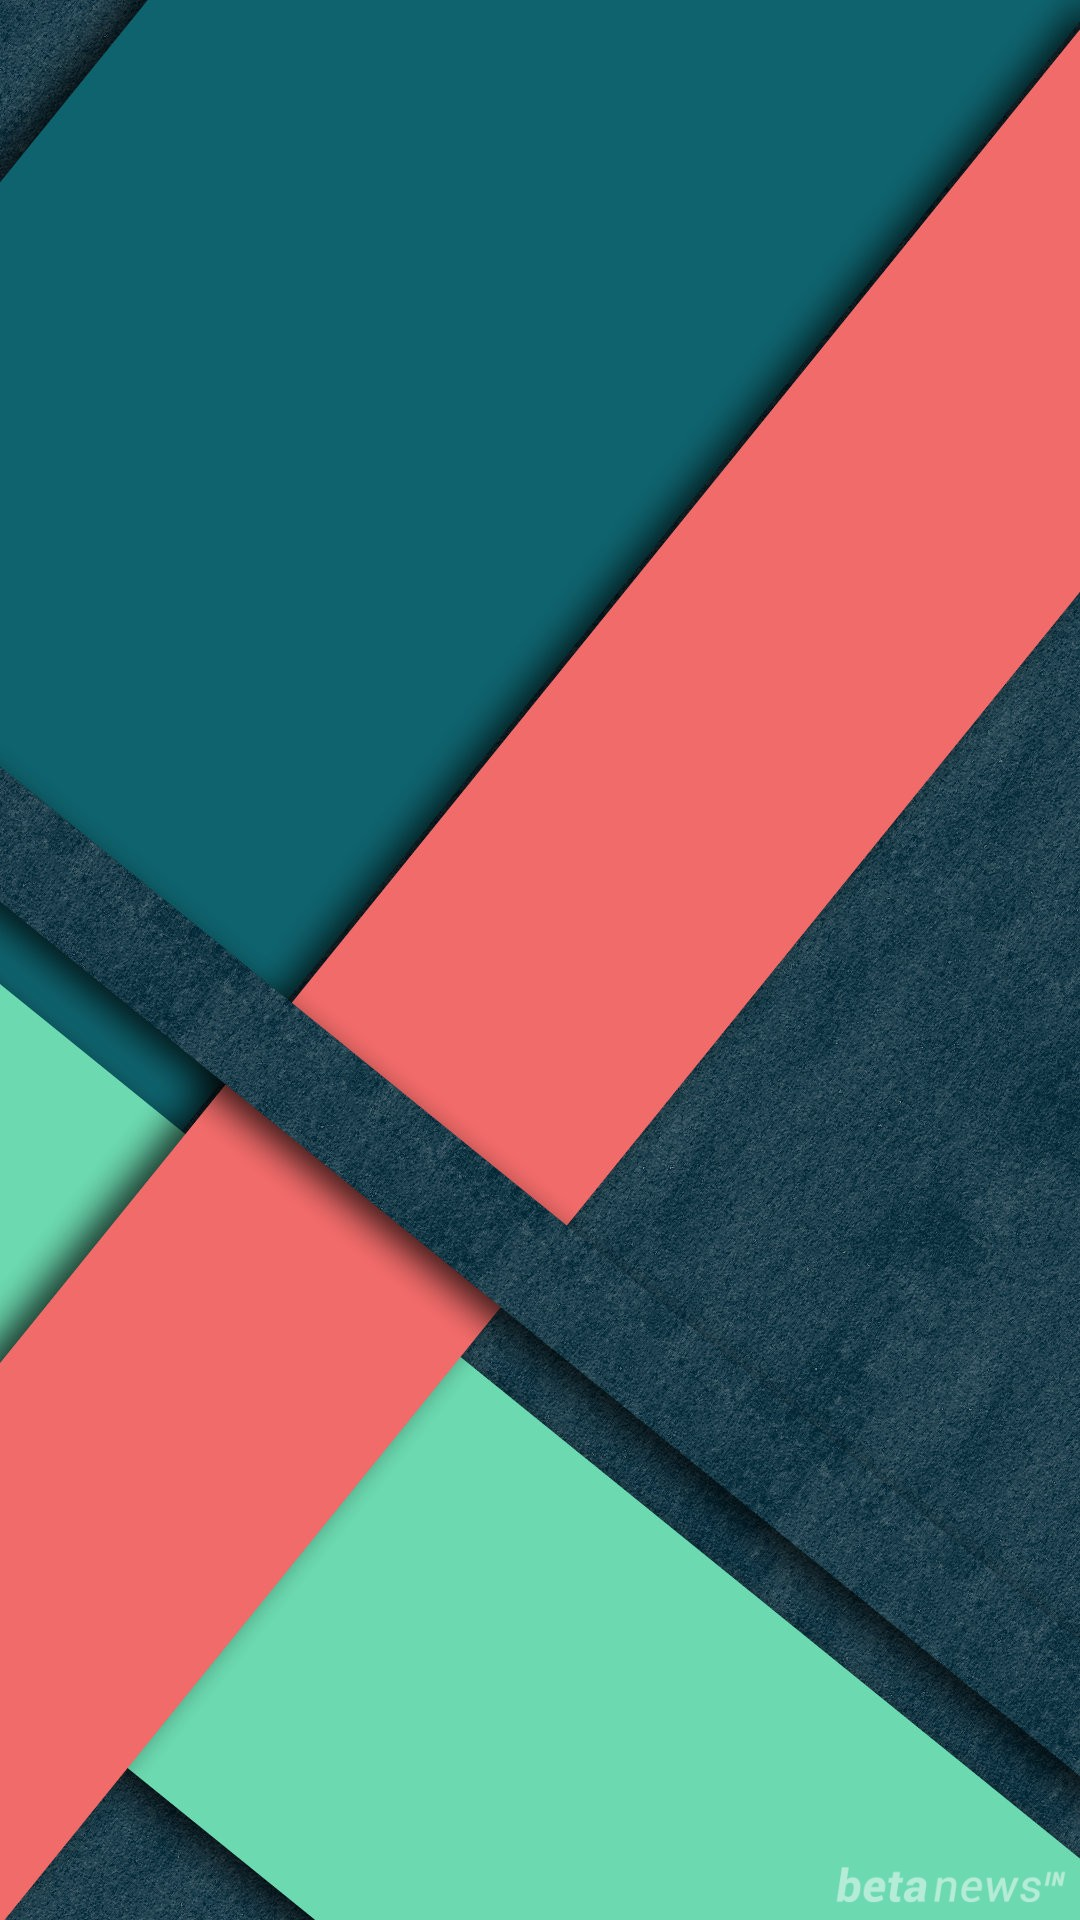 FONDO Wallpapers Material Design Android